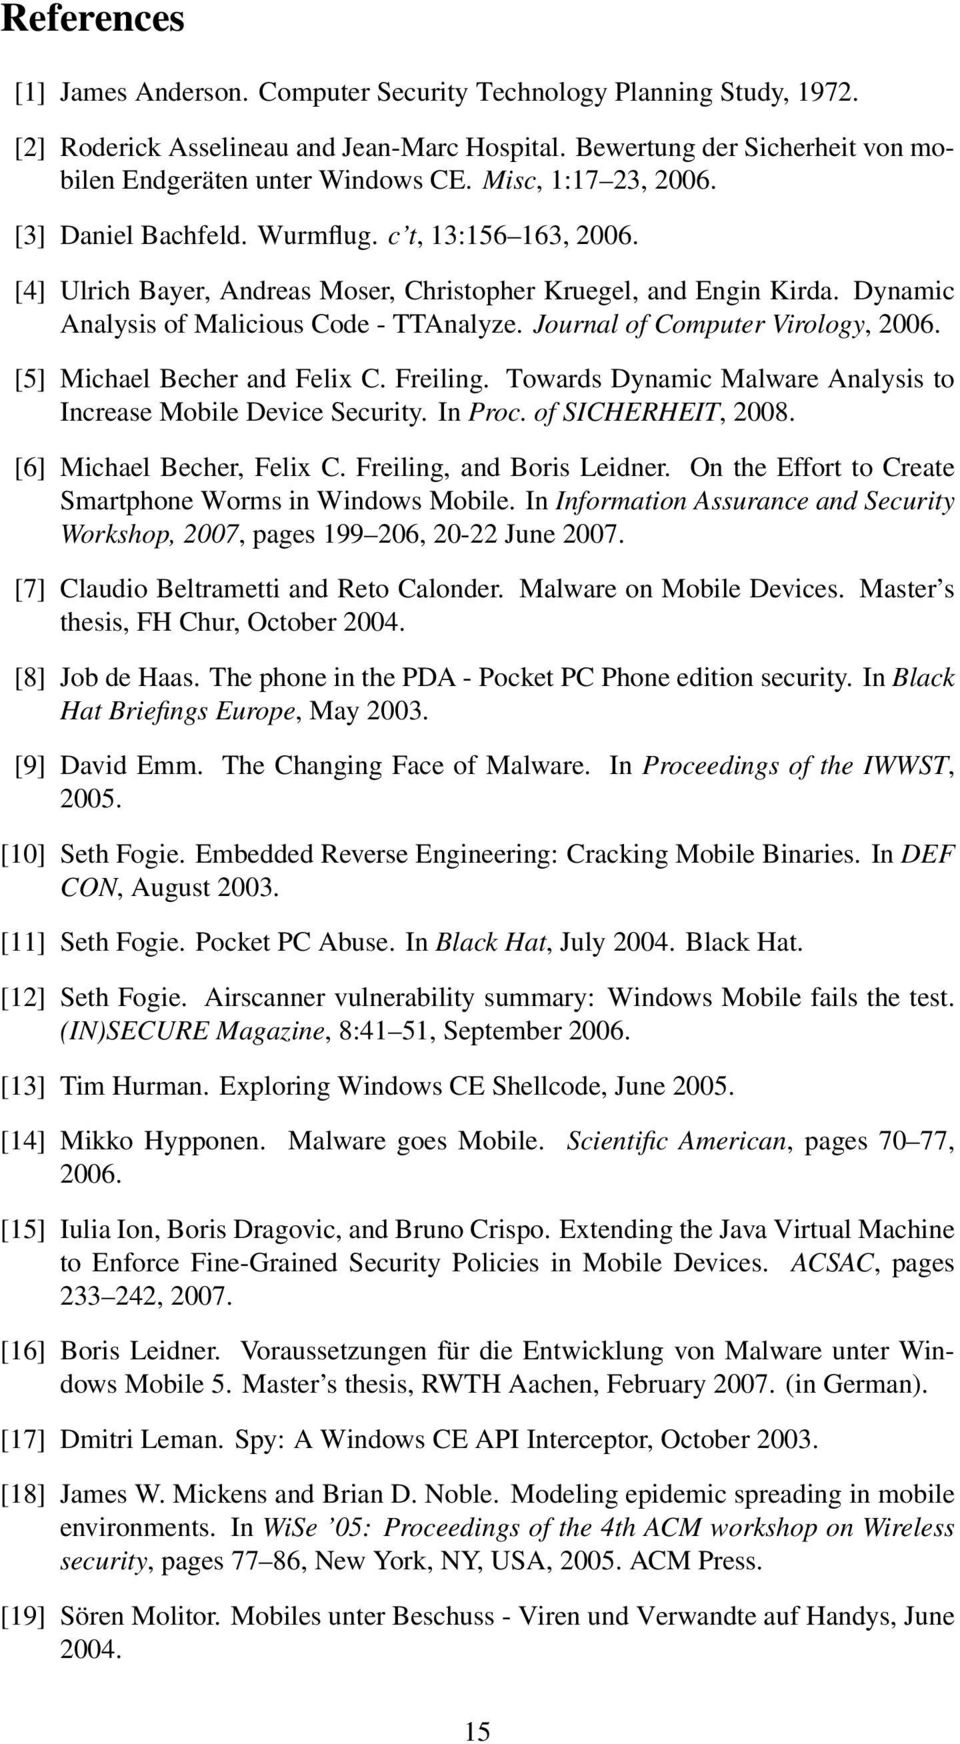 Journal of Computer Virology, 2006. [5] Michael Becher and Felix C. Freiling. Towards Dynamic Malware Analysis to Increase Mobile Device Security. In Proc. of SICHERHEIT, 2008.